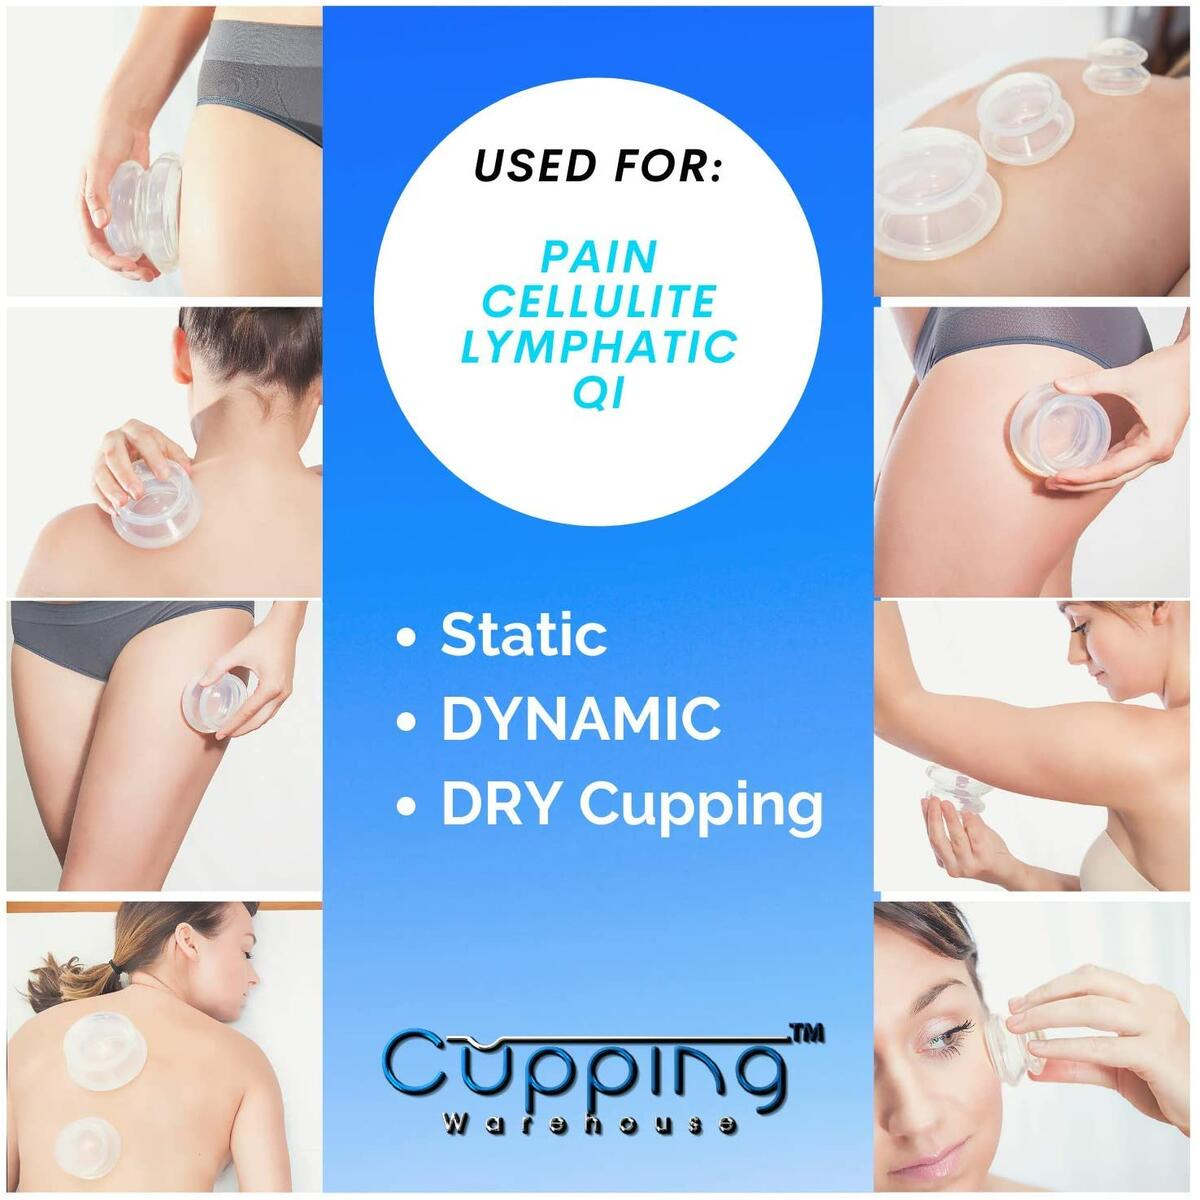 Cupping Warehouse Supreme 4 Intermediate PRO 5560 (4 Sizes) Soft Cupping Therapy Sets Professional Experienced and Self Care: Clear Chinese Silicone Massage Cups for Pain, Joints, Fascia, Cellulite